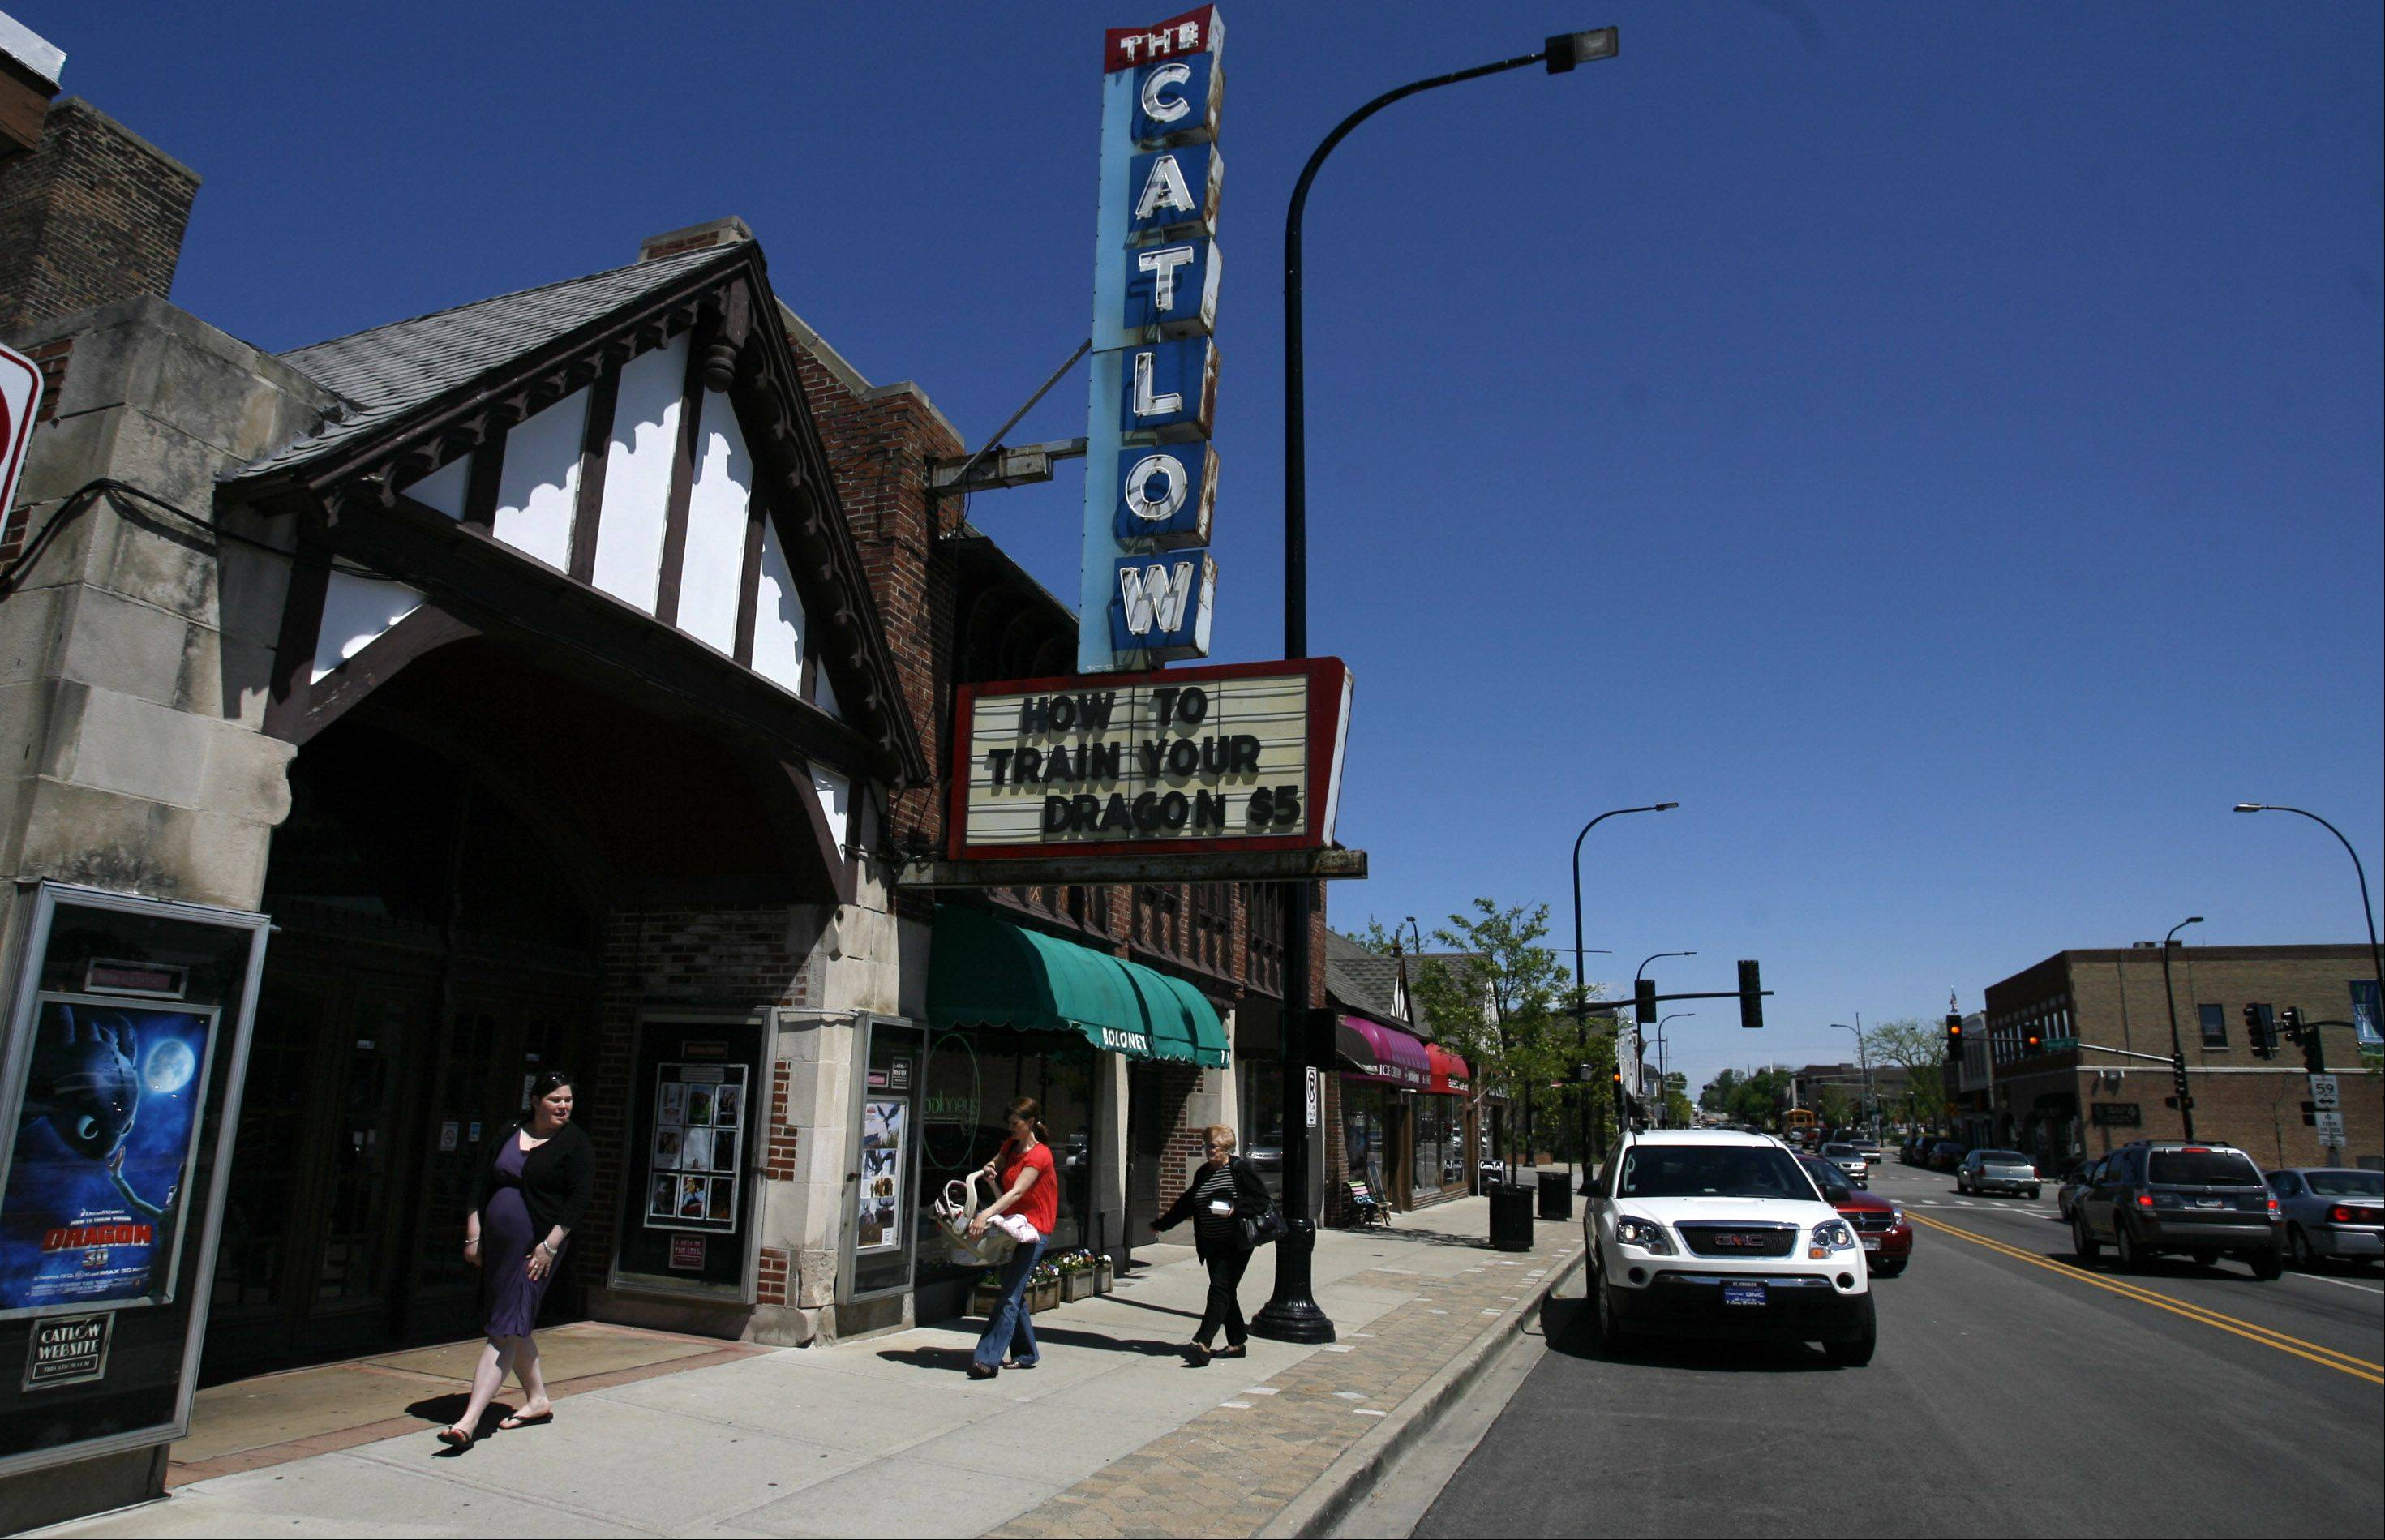 The historic Catlow theater in Barrington is seeking patrons' help to raise the $100,000 it needs for a now-or-never conversion from film to digital projection.